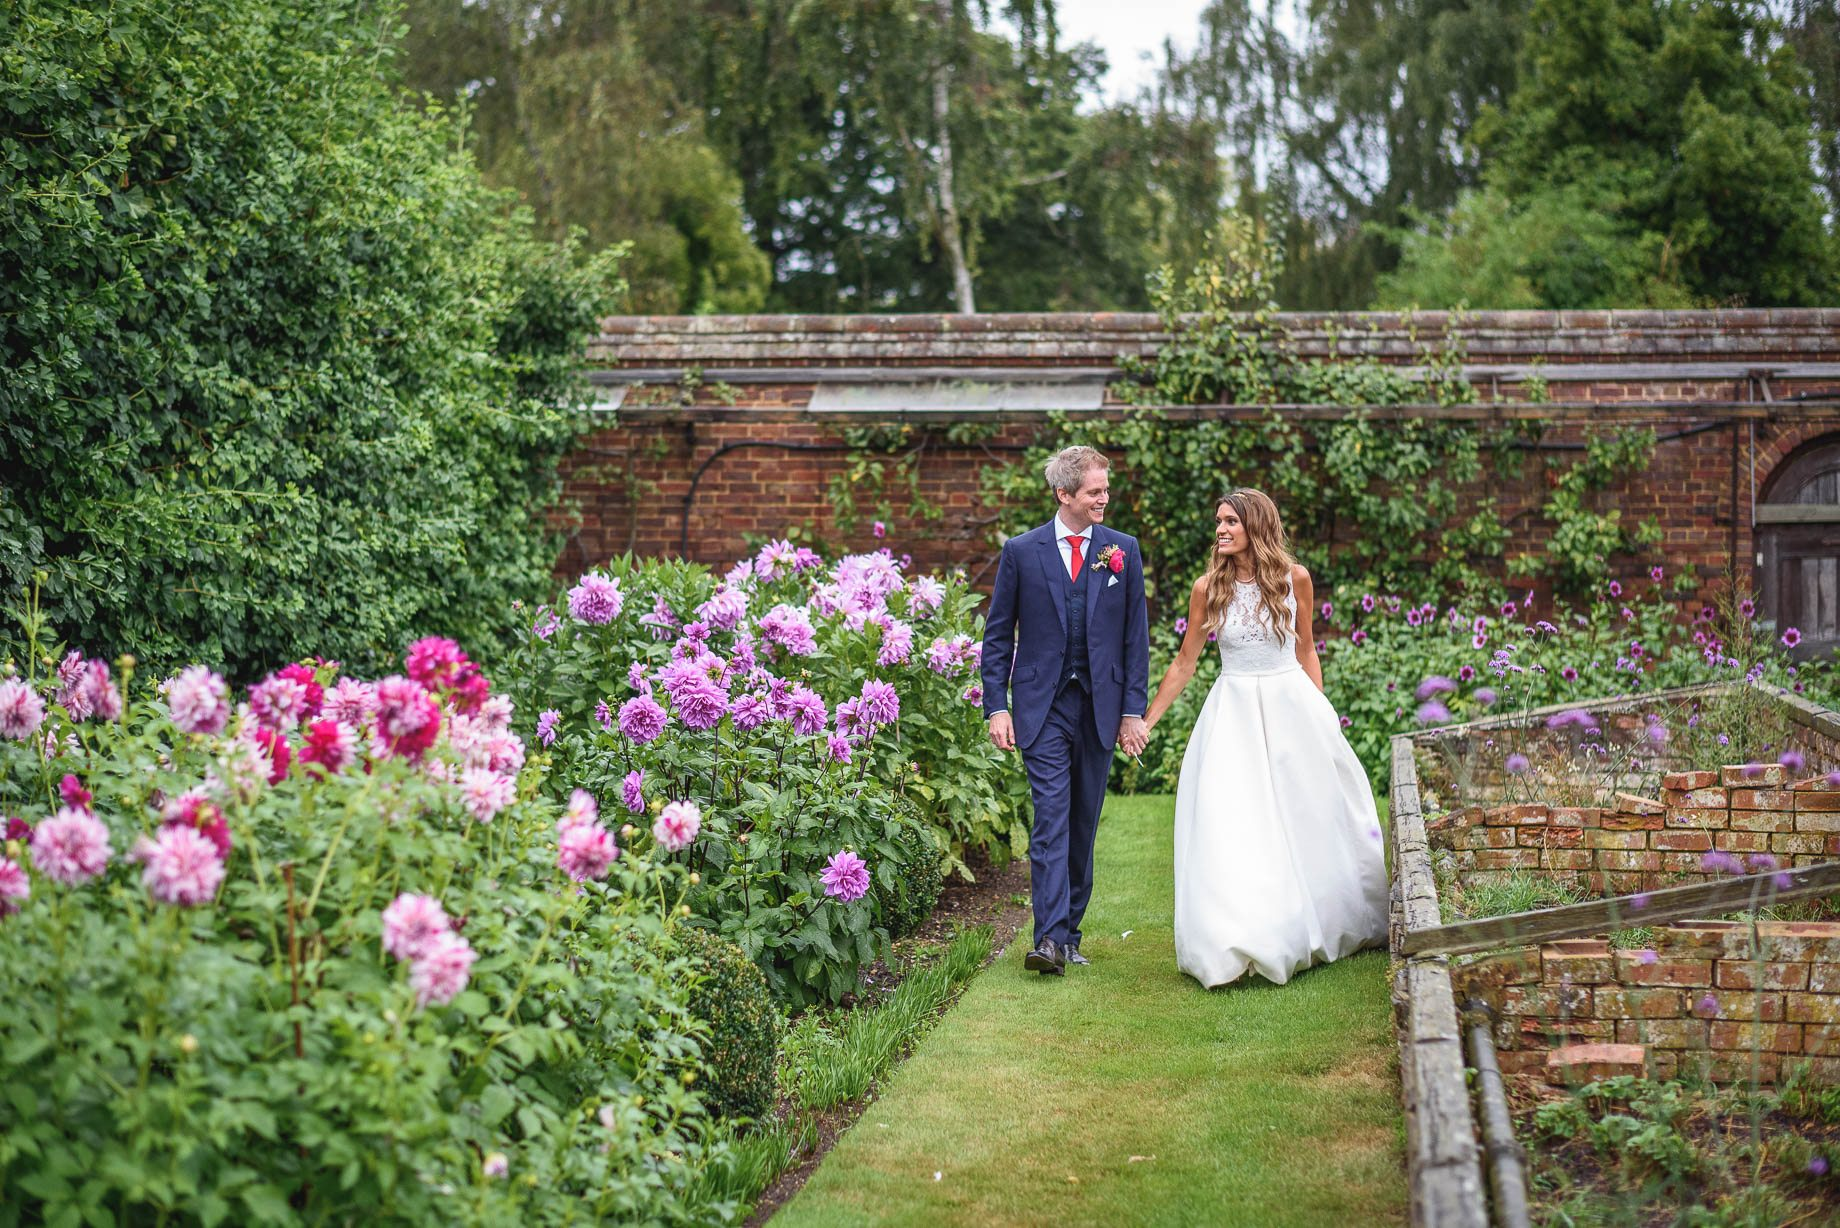 surrey-wedding-photography-guy-collier-photography-claire-and-tom-185-of-227